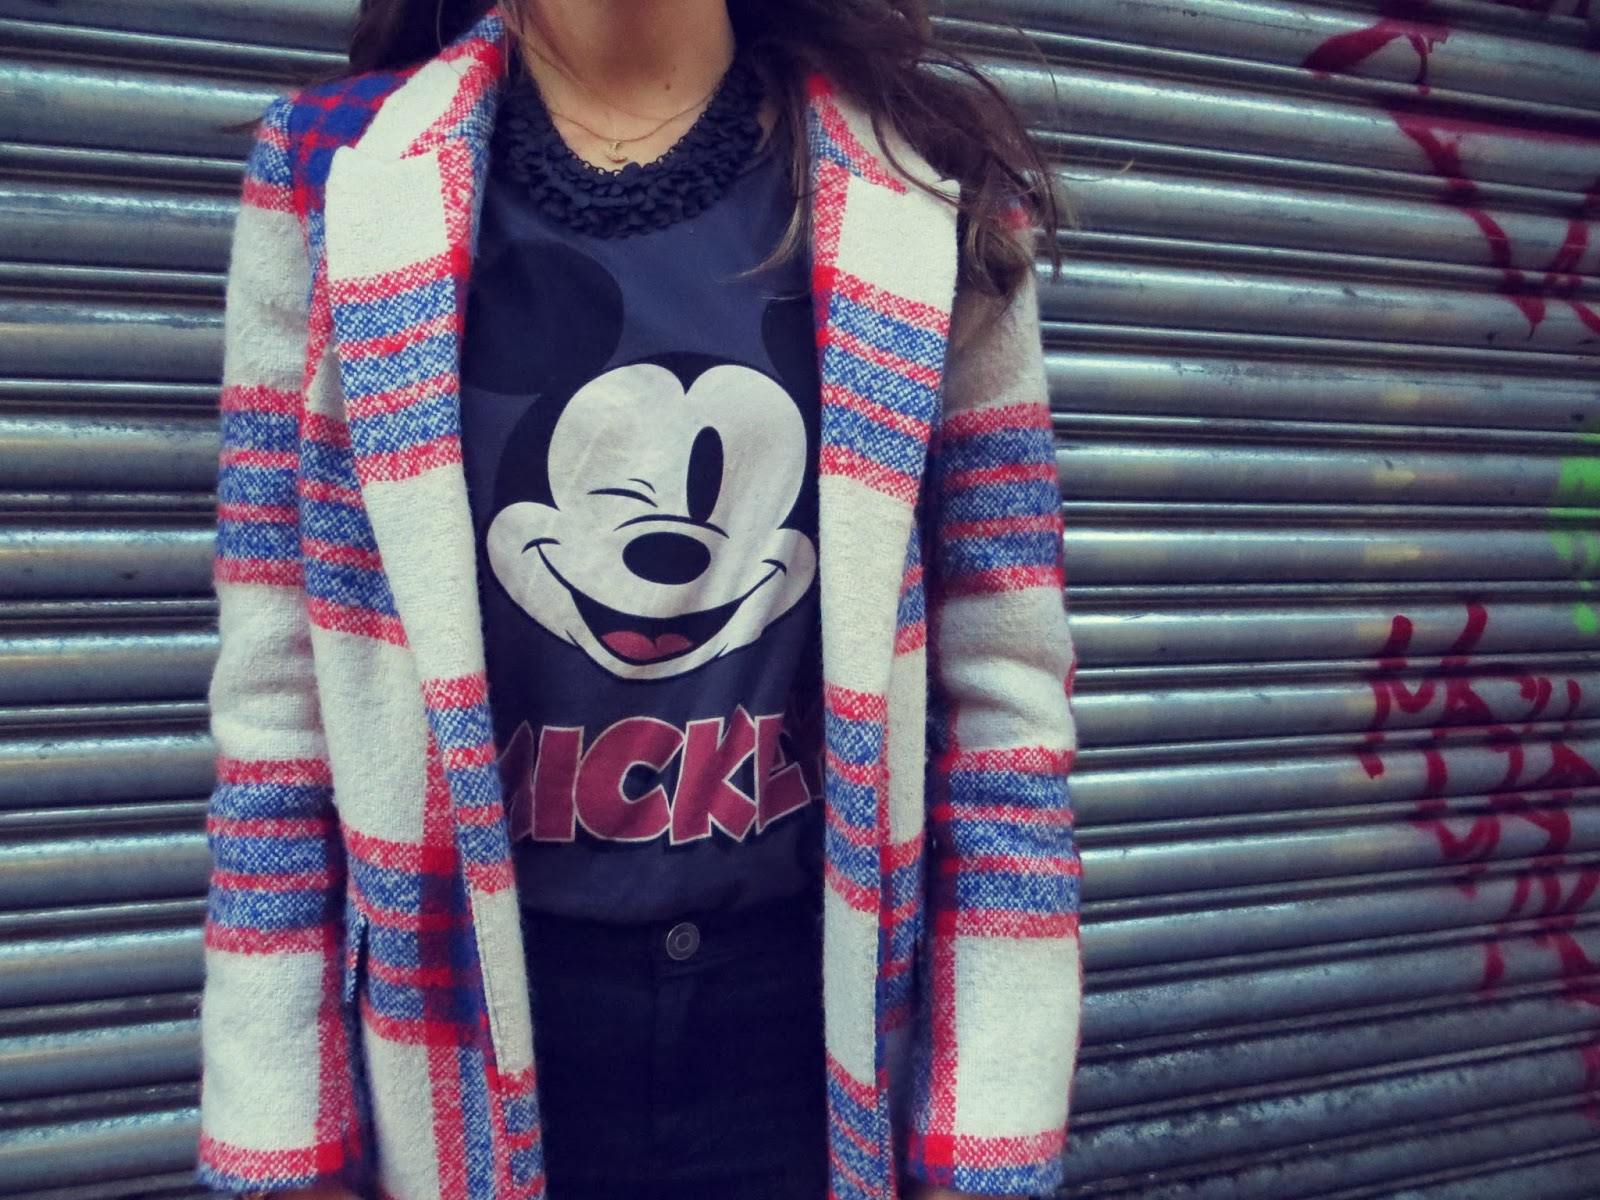 red blue cream plaid coat manly menswear masculine androgynous mickey mouse topshop zara fashio ndaily look look post blog new look frilly socks